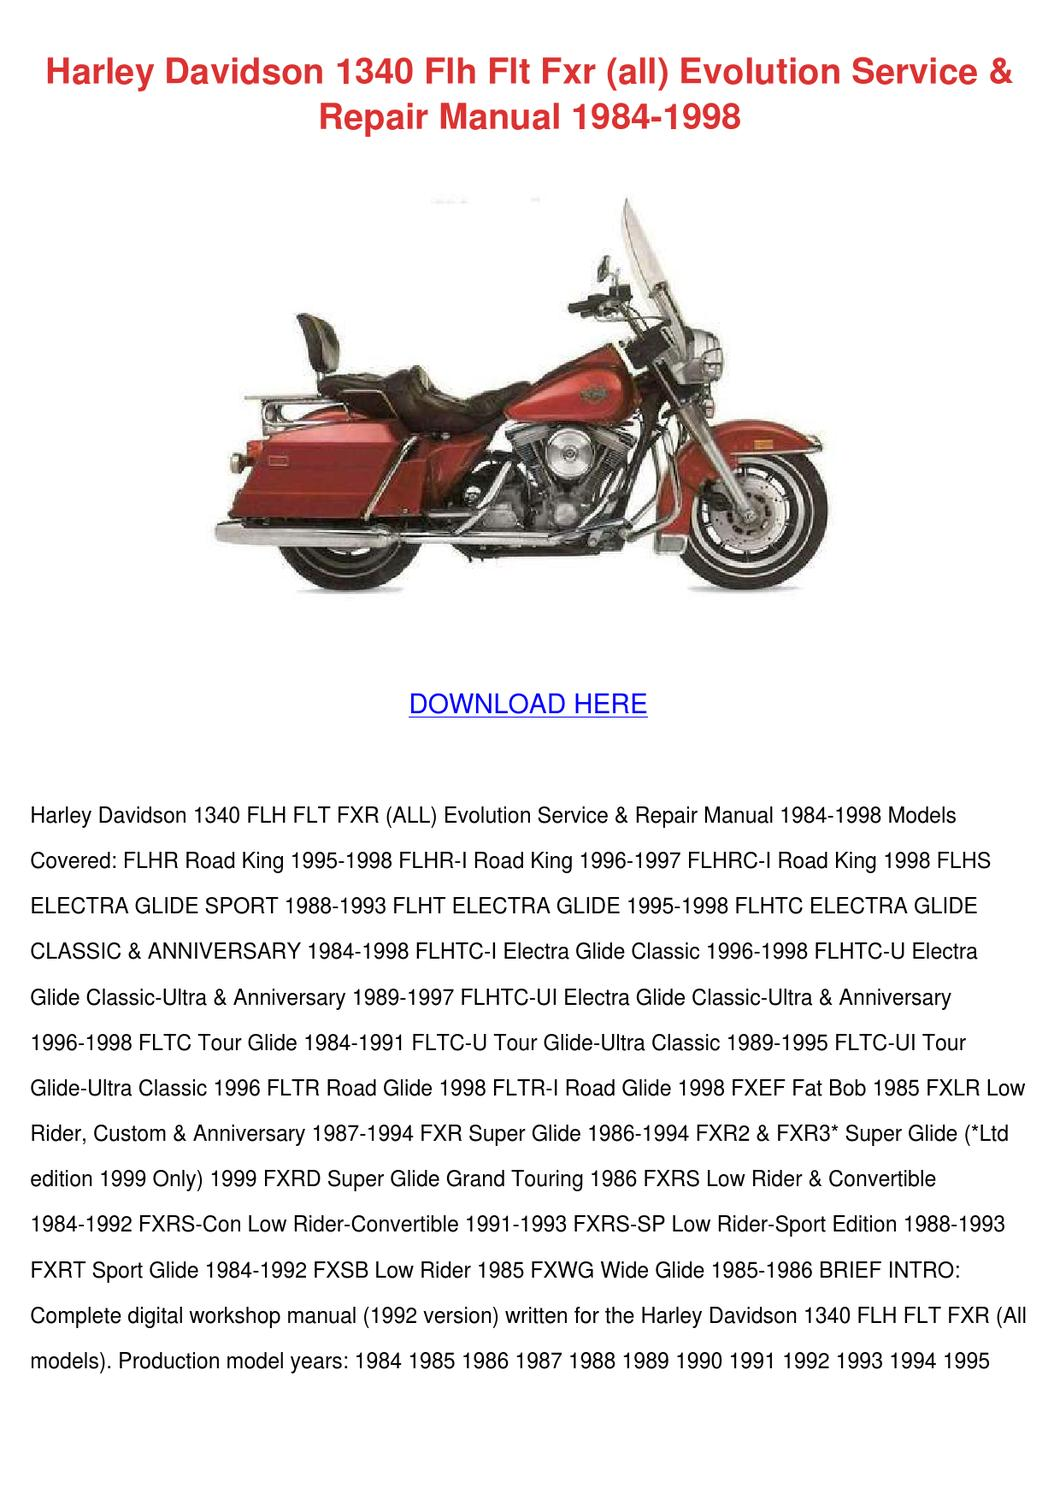 Flh 92 Wiring Diagram 21 Images Diagrams Harley Page 1 Davidson 1340 Flt Fxr All Evolutio By Janay Grogan Issuu Flhs Fender Skirt